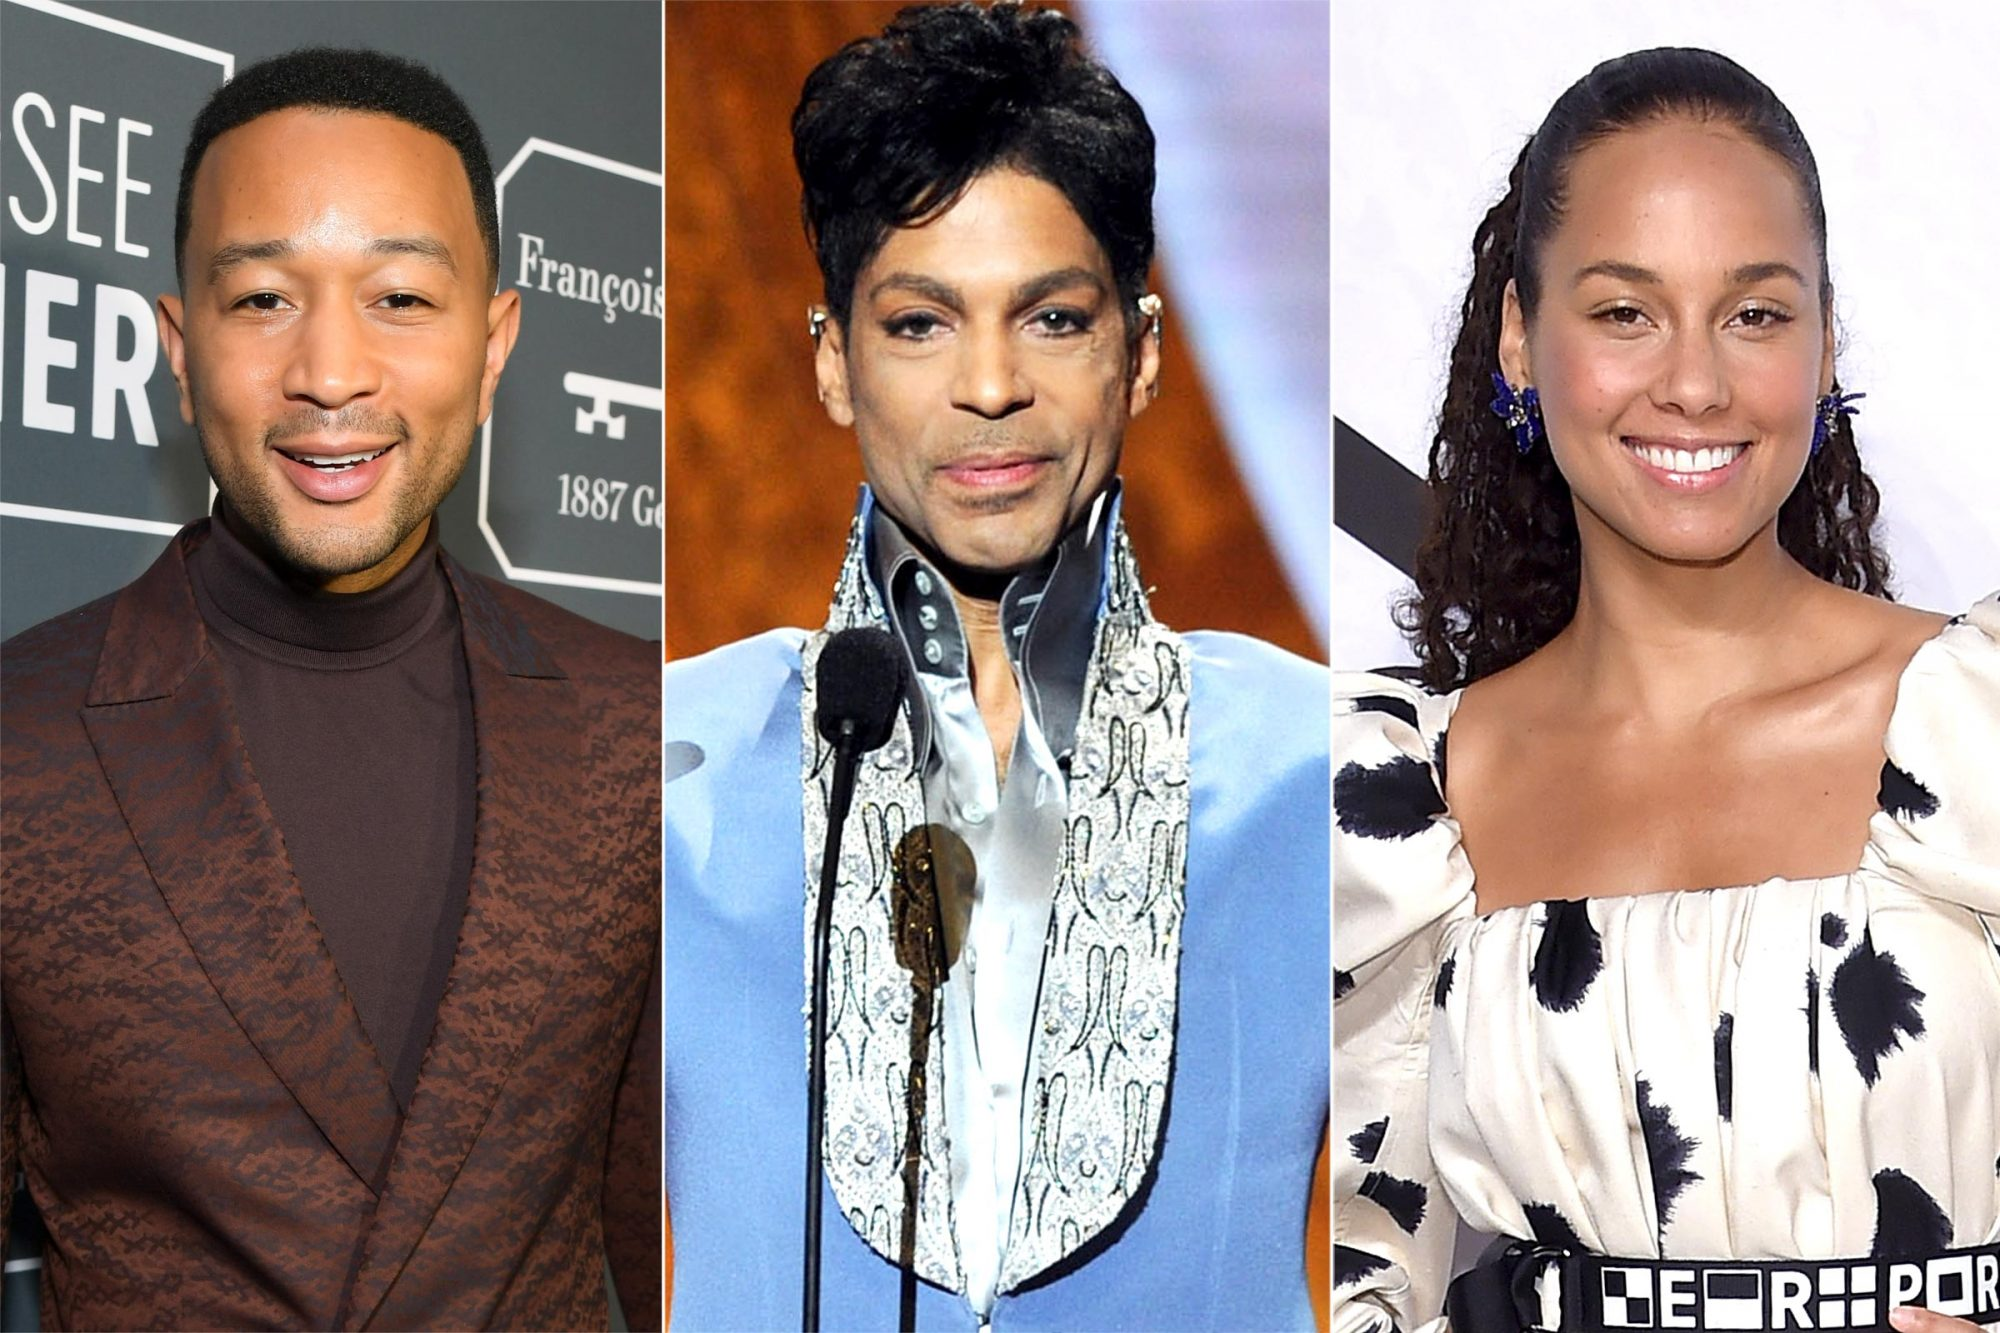 John Legend / Prince / Alicia Keys